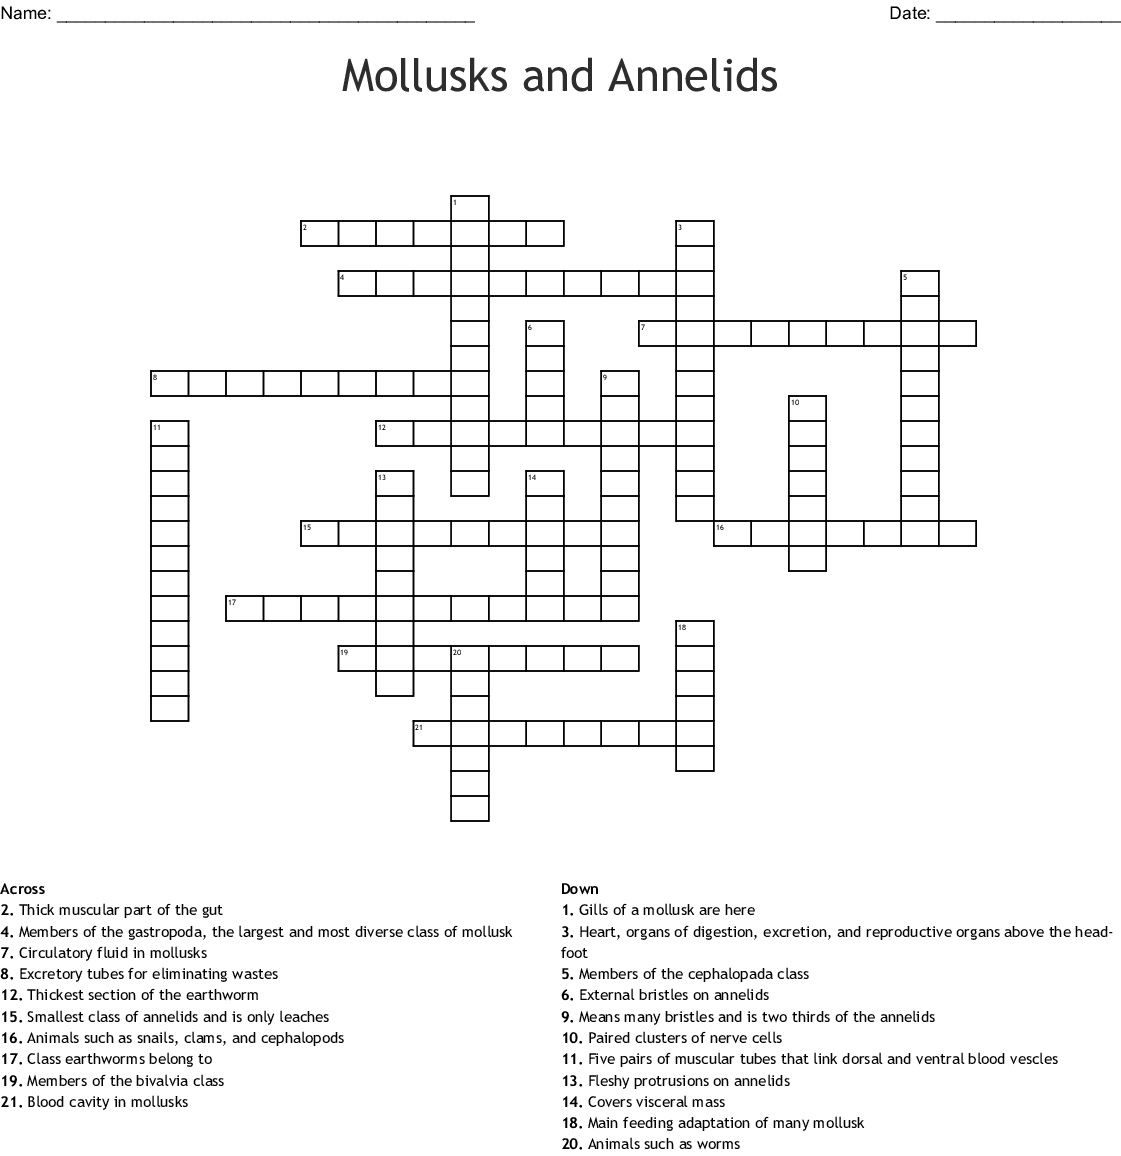 Mollusks Worksheet 1 Answer Key